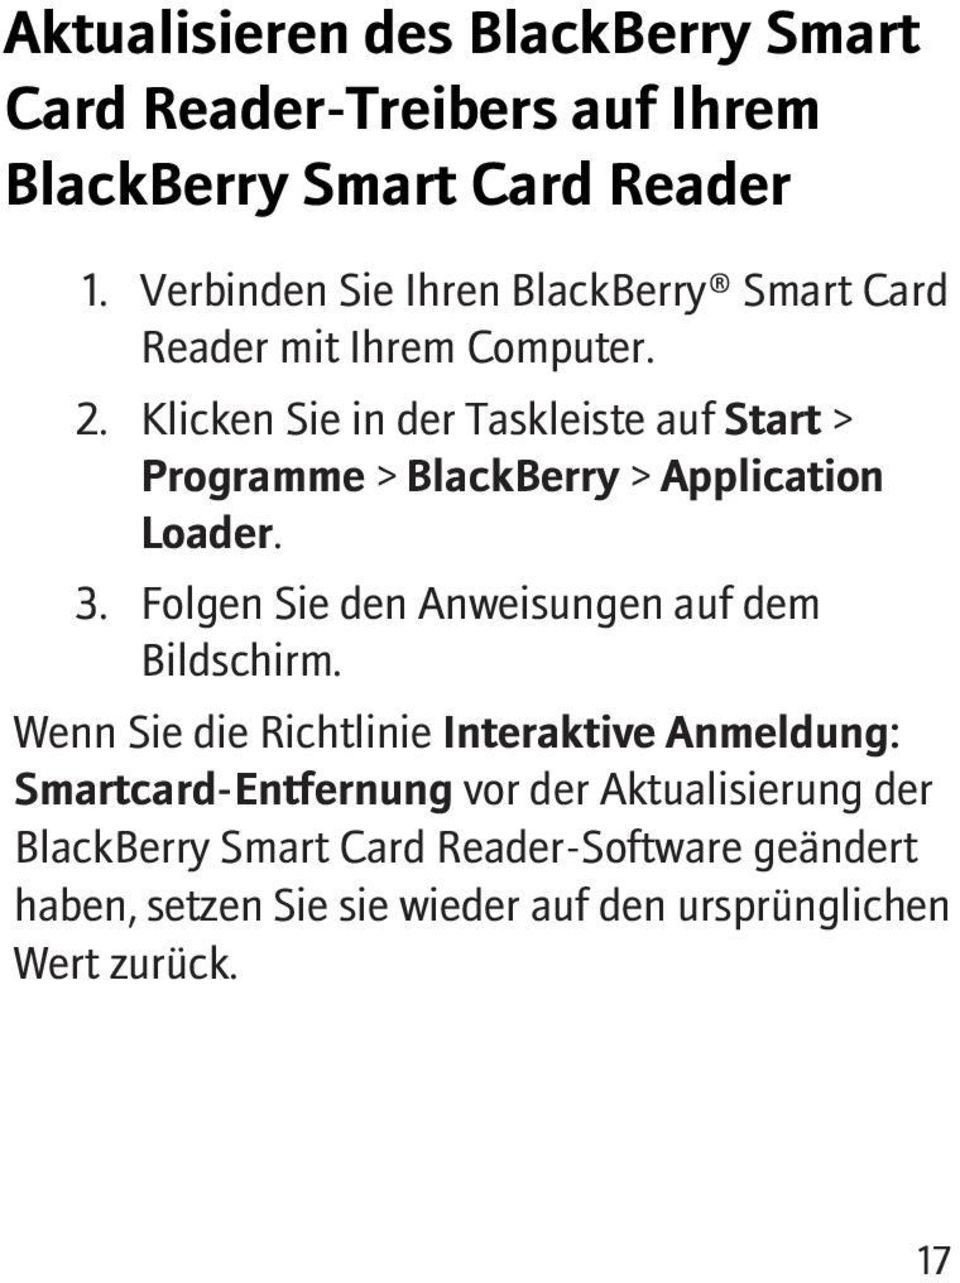 Klicken Sie in der Taskleiste auf Start > Programme > BlackBerry > Application Loader. 3.